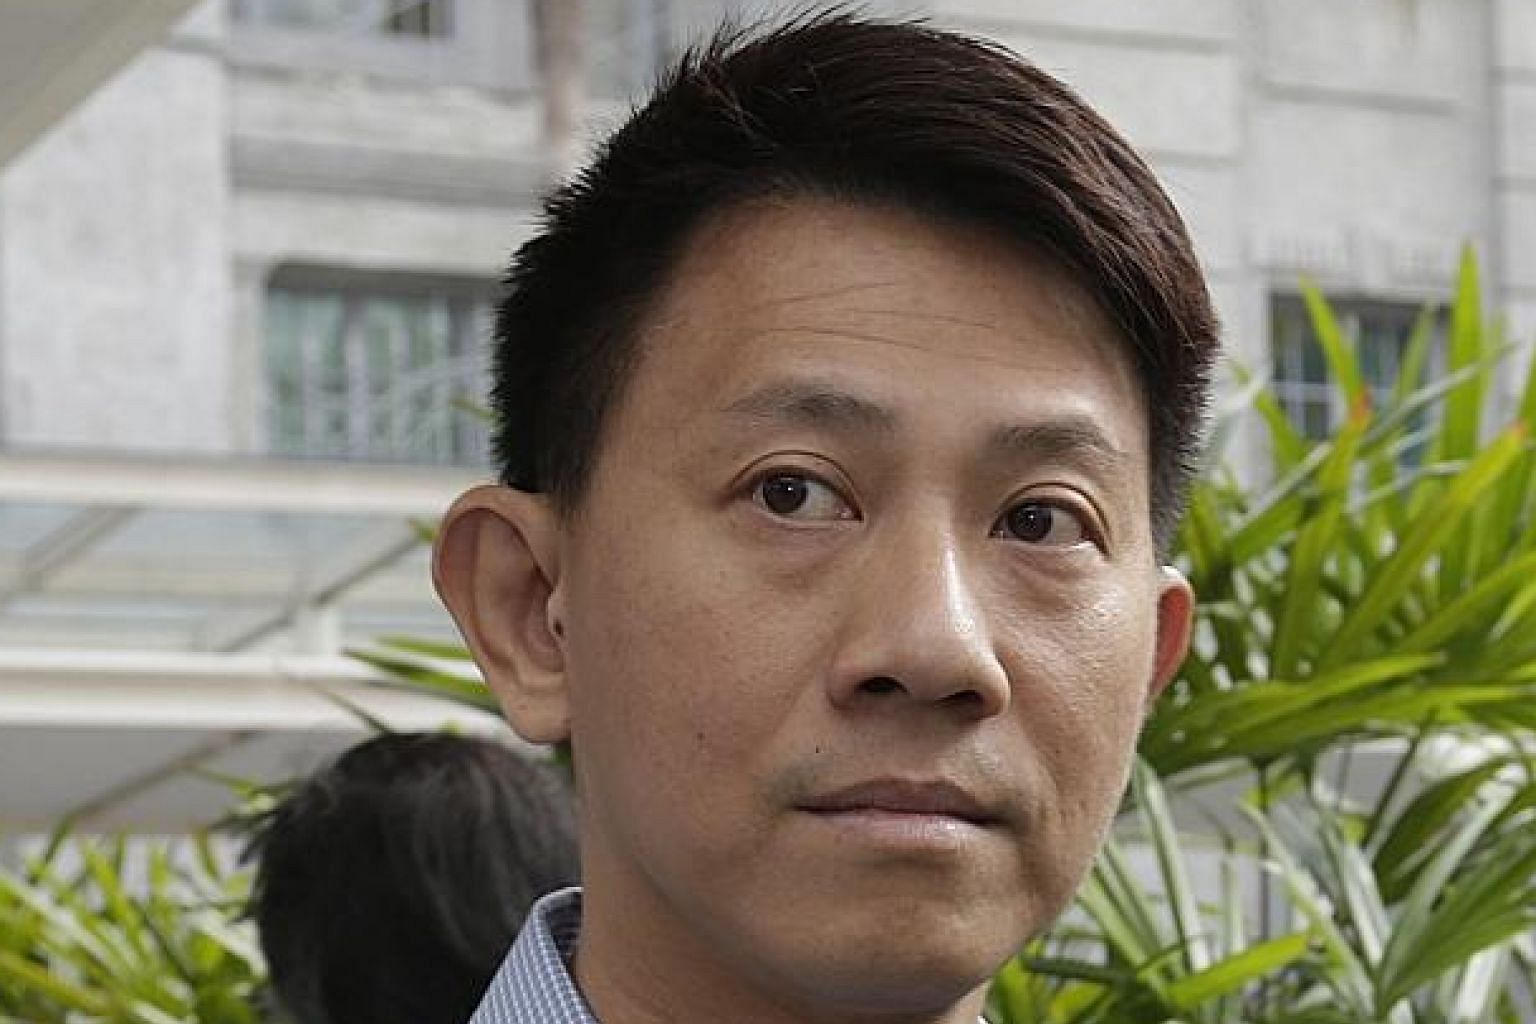 Mr Tan Ye Peng was released from custody on June 1 after taking remission into account. He is the fourth CHC leader to be released.